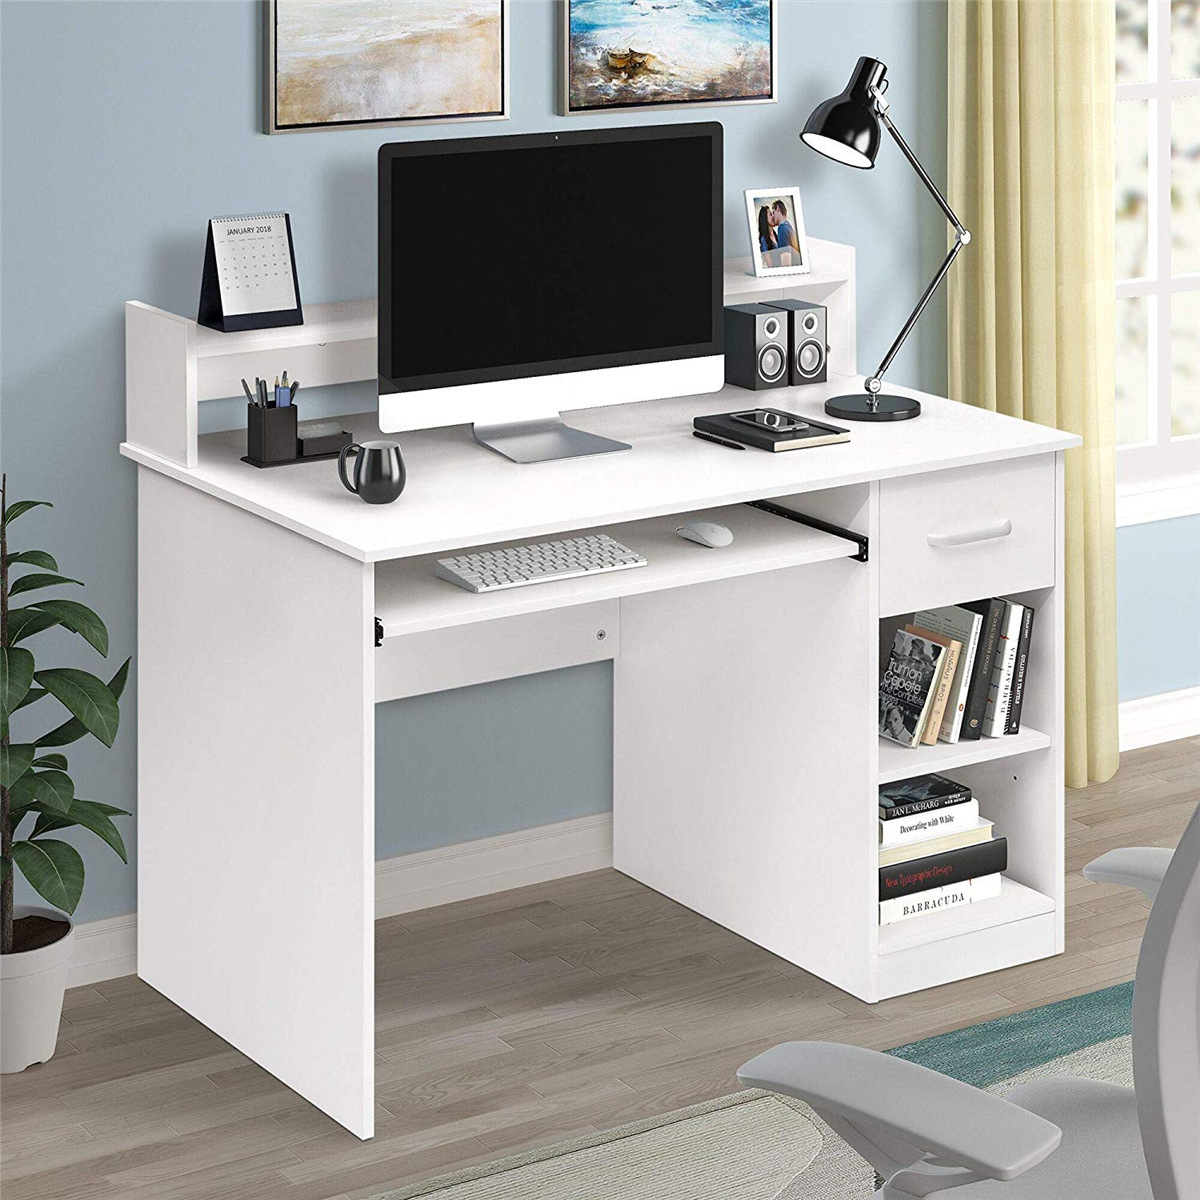 40.9X18.8X37.7 Inch Wooden Durable Computer Desk Laptop Table Desktop Desk For Home Office Working Study White/Black